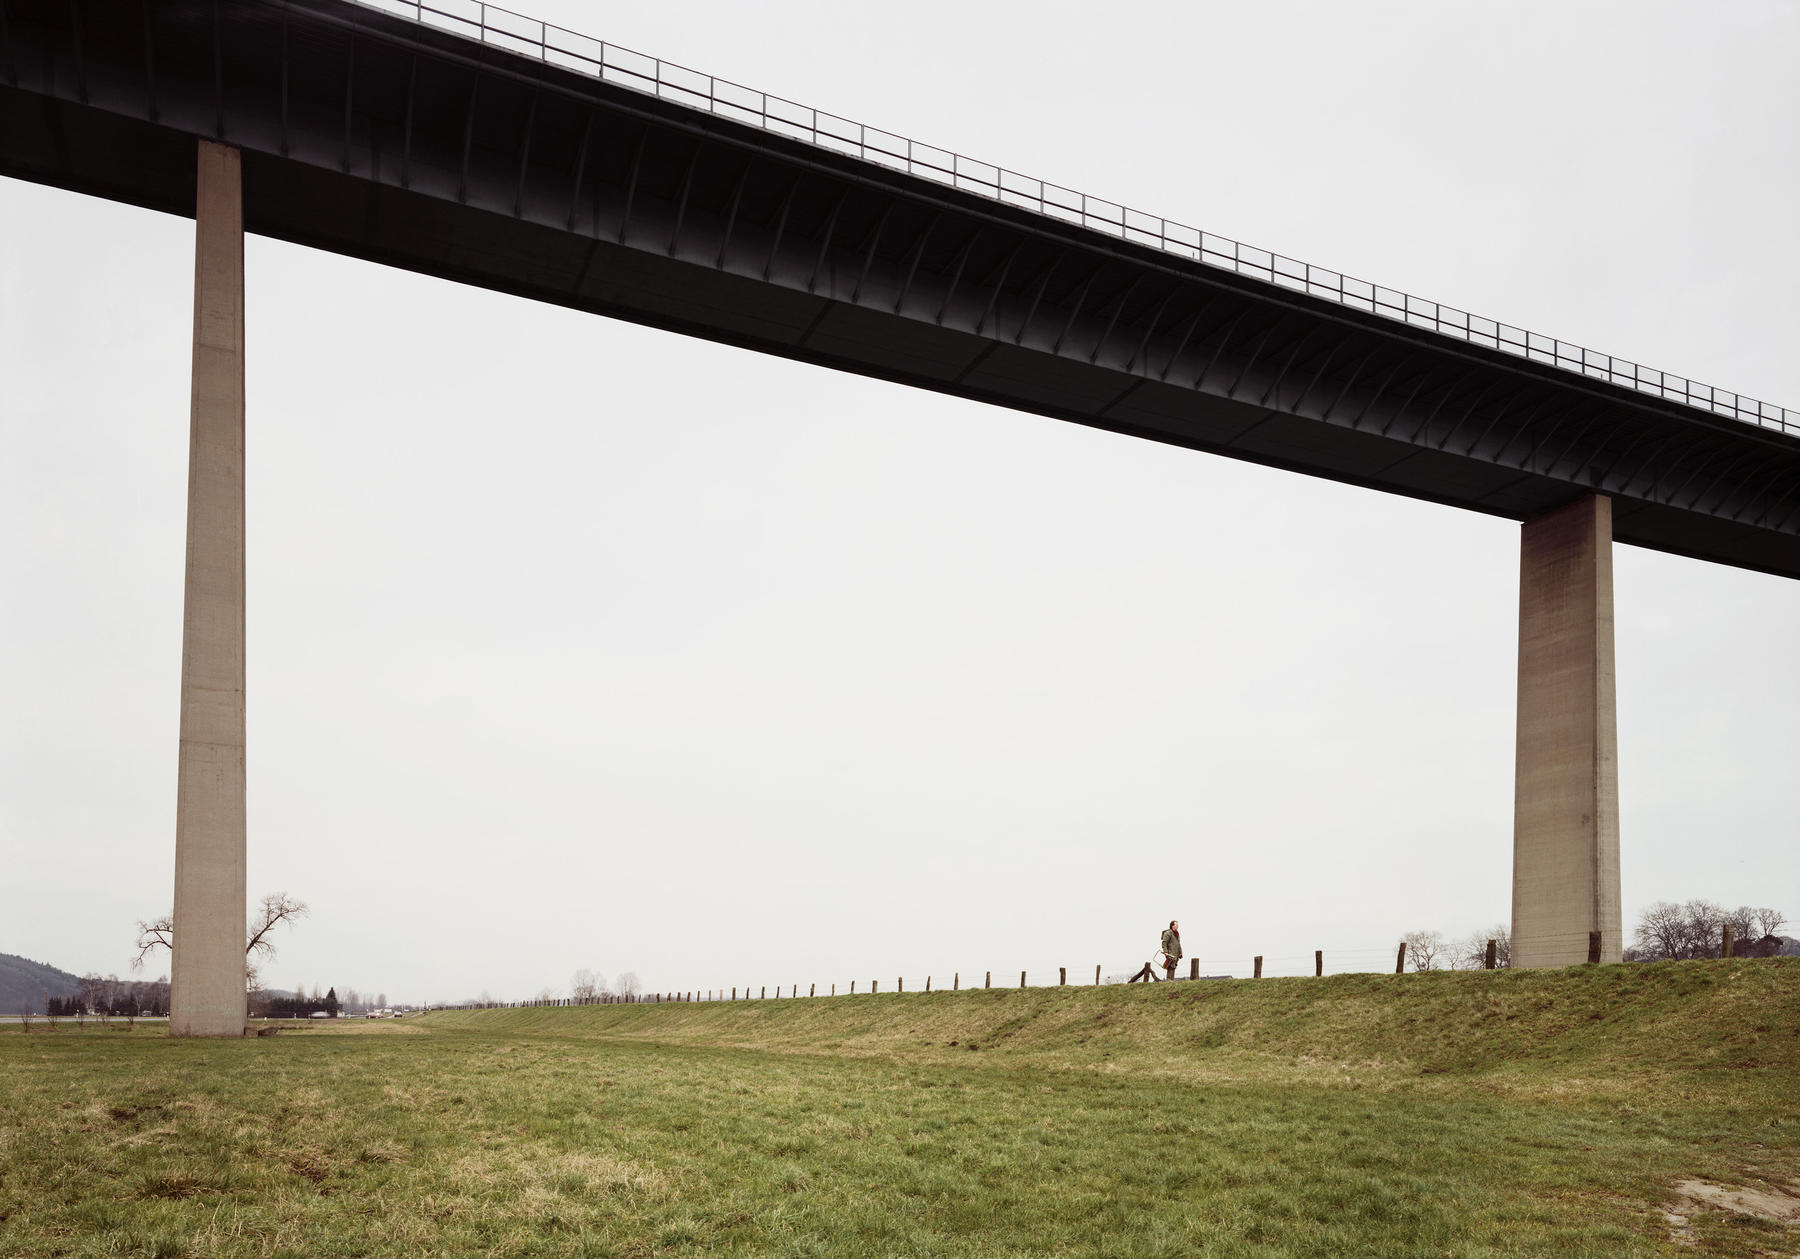 Ruhr Valley (Gurksy, 1989) . Courtesy of http://www.andreasgursky.com